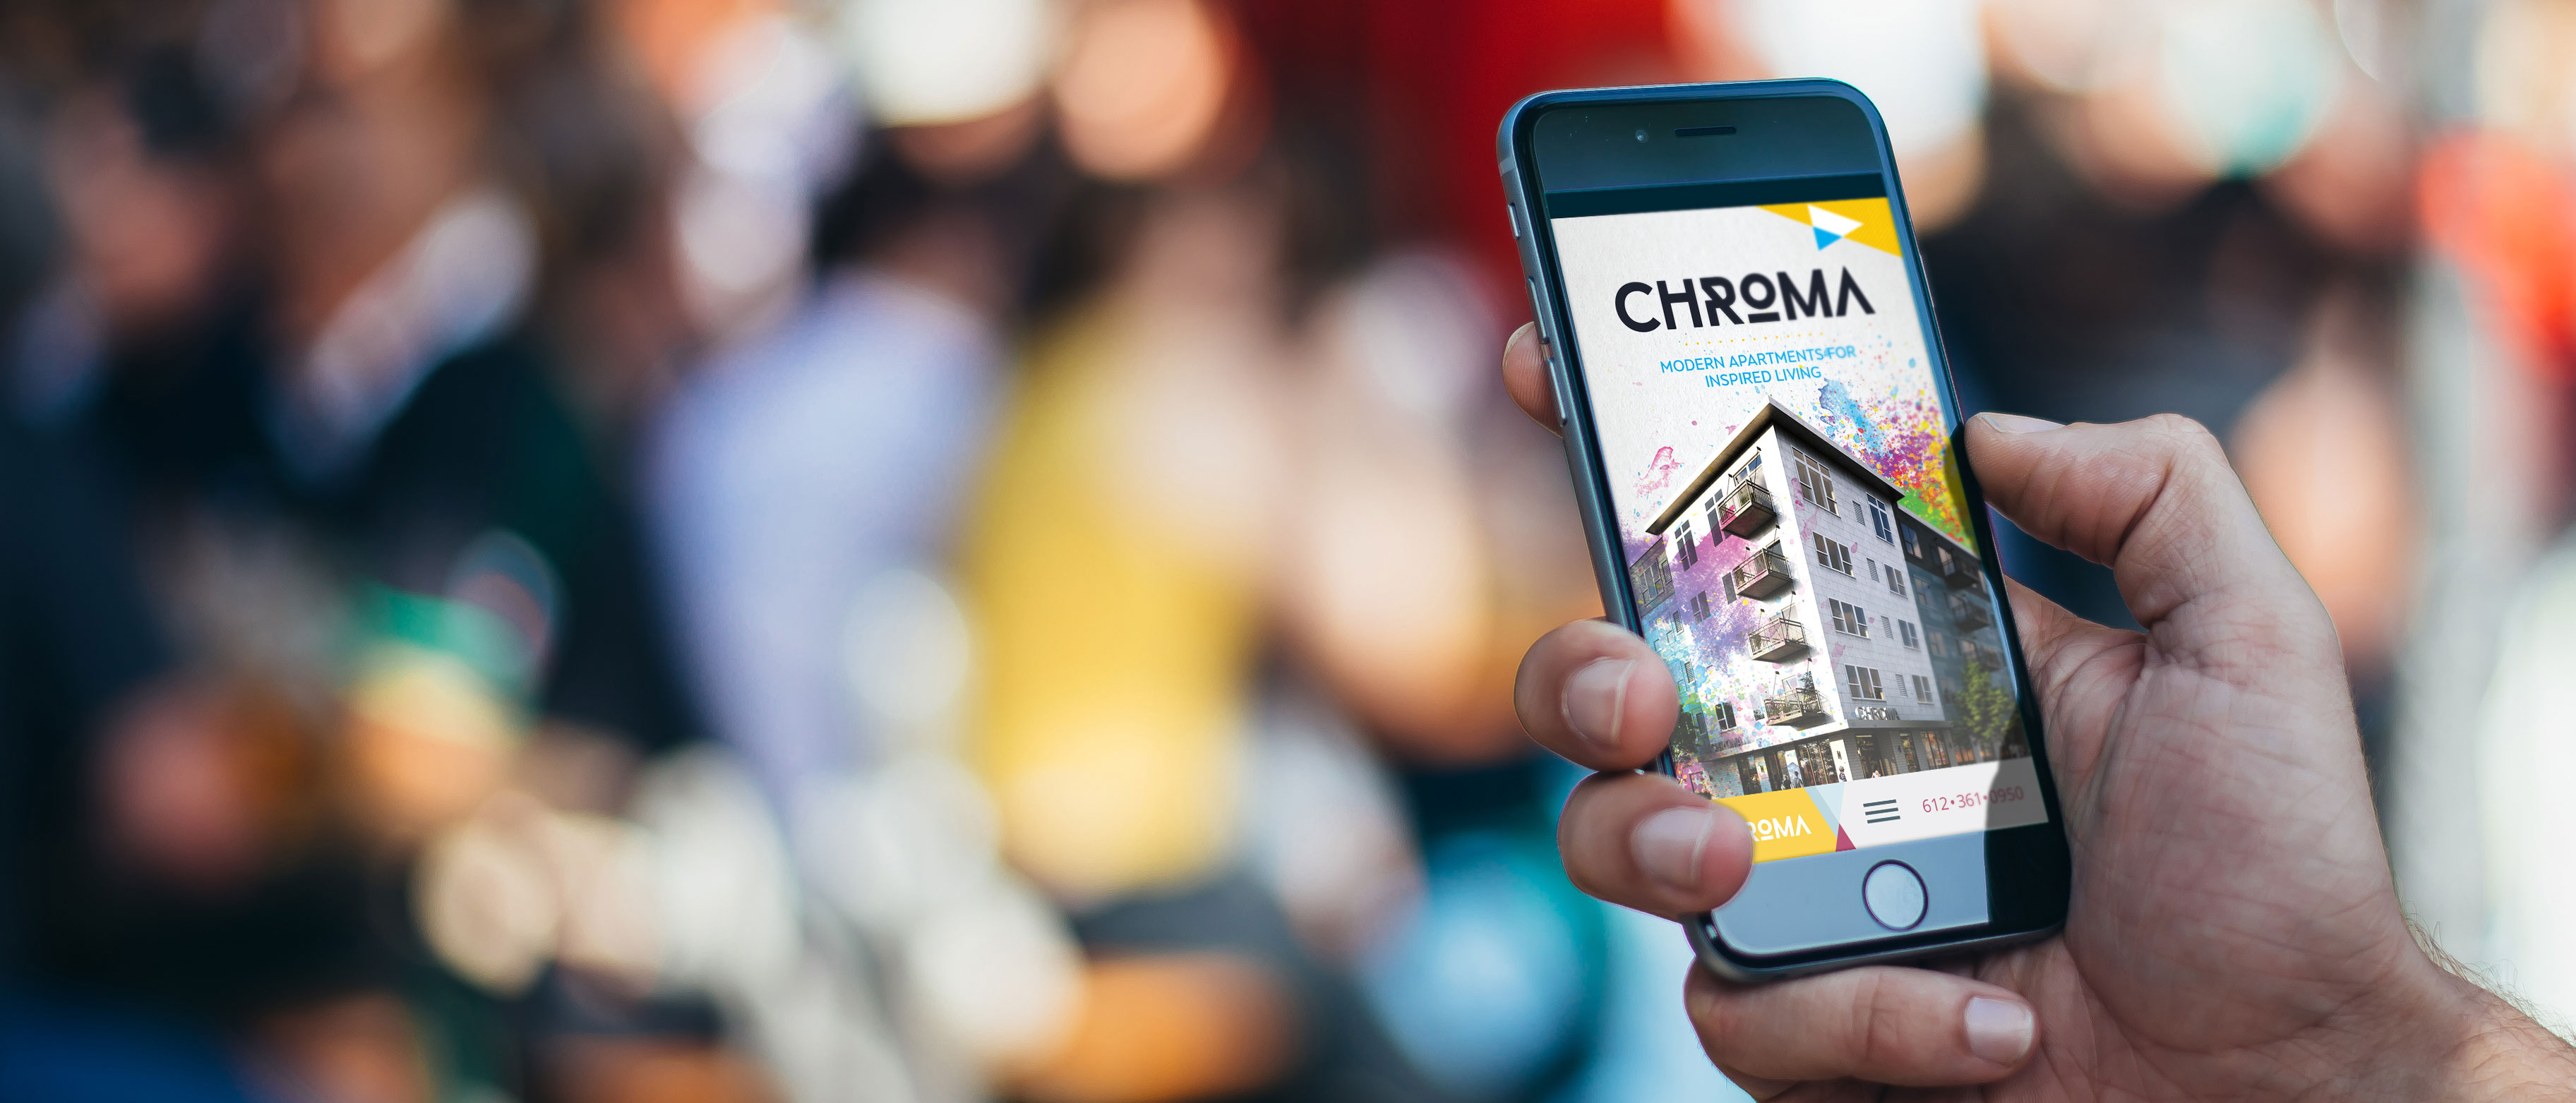 Chroma website being viewed on a mobile phone